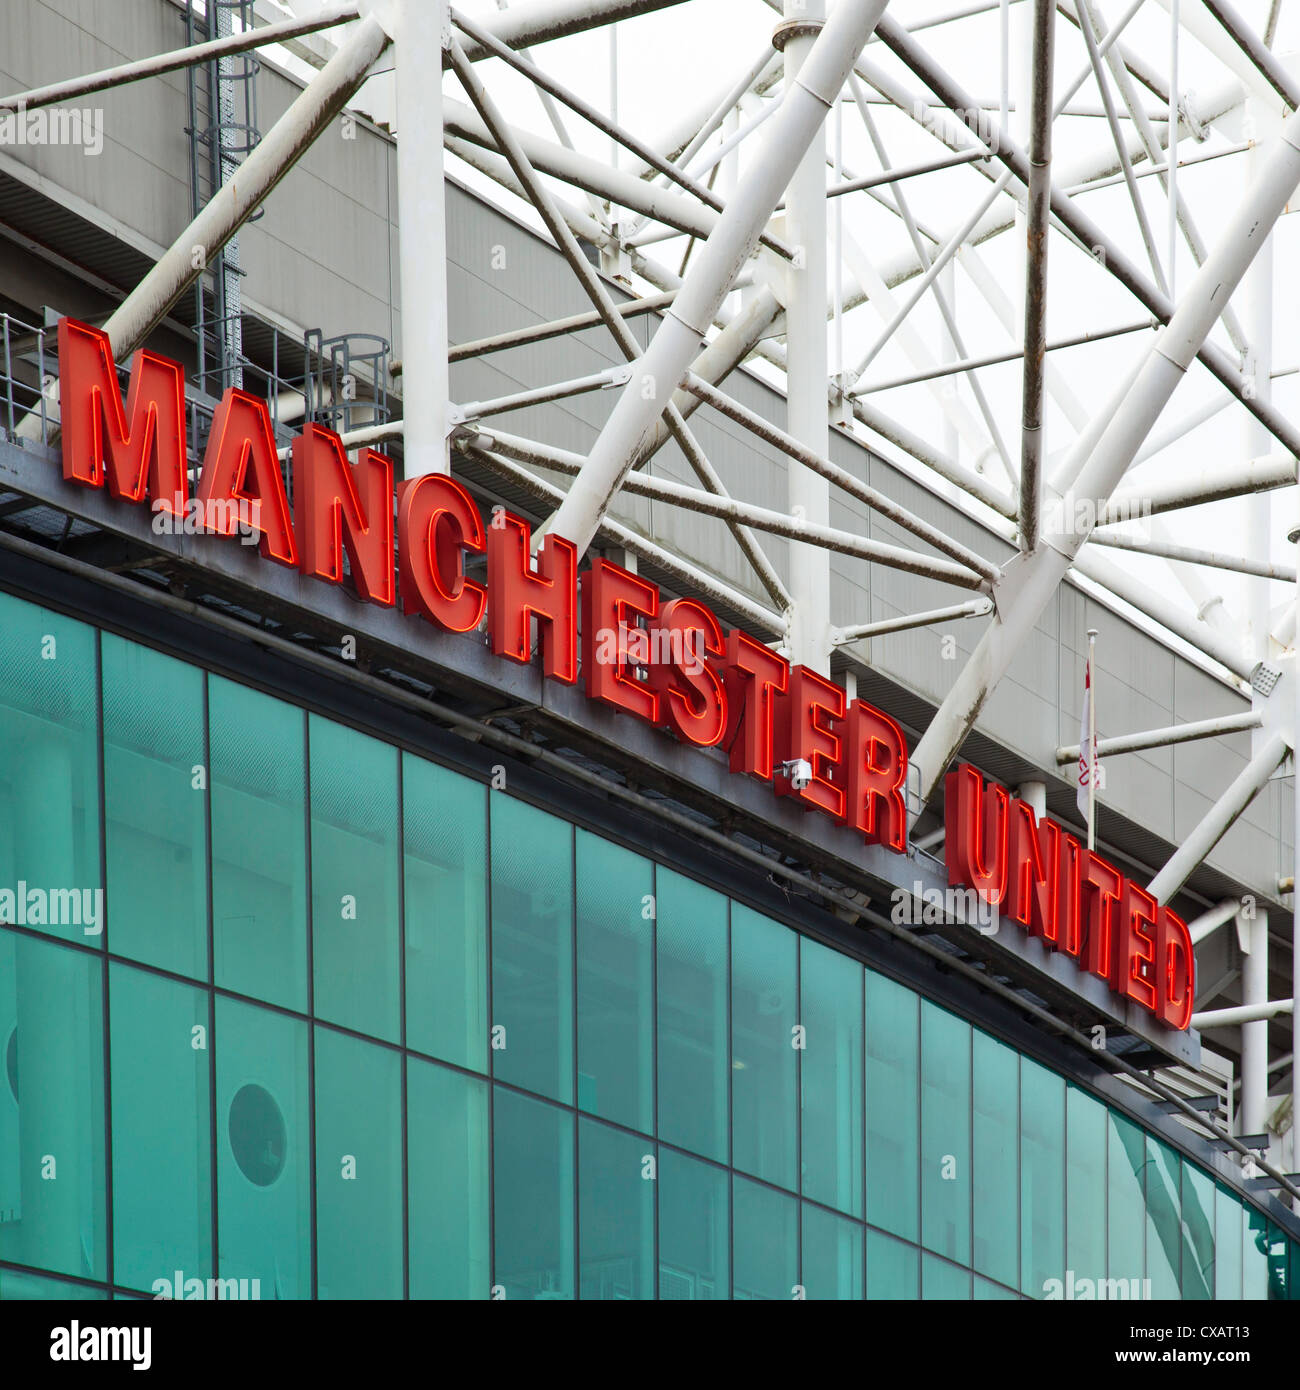 Old Trafford Football Stadium Manchester - Stock Image